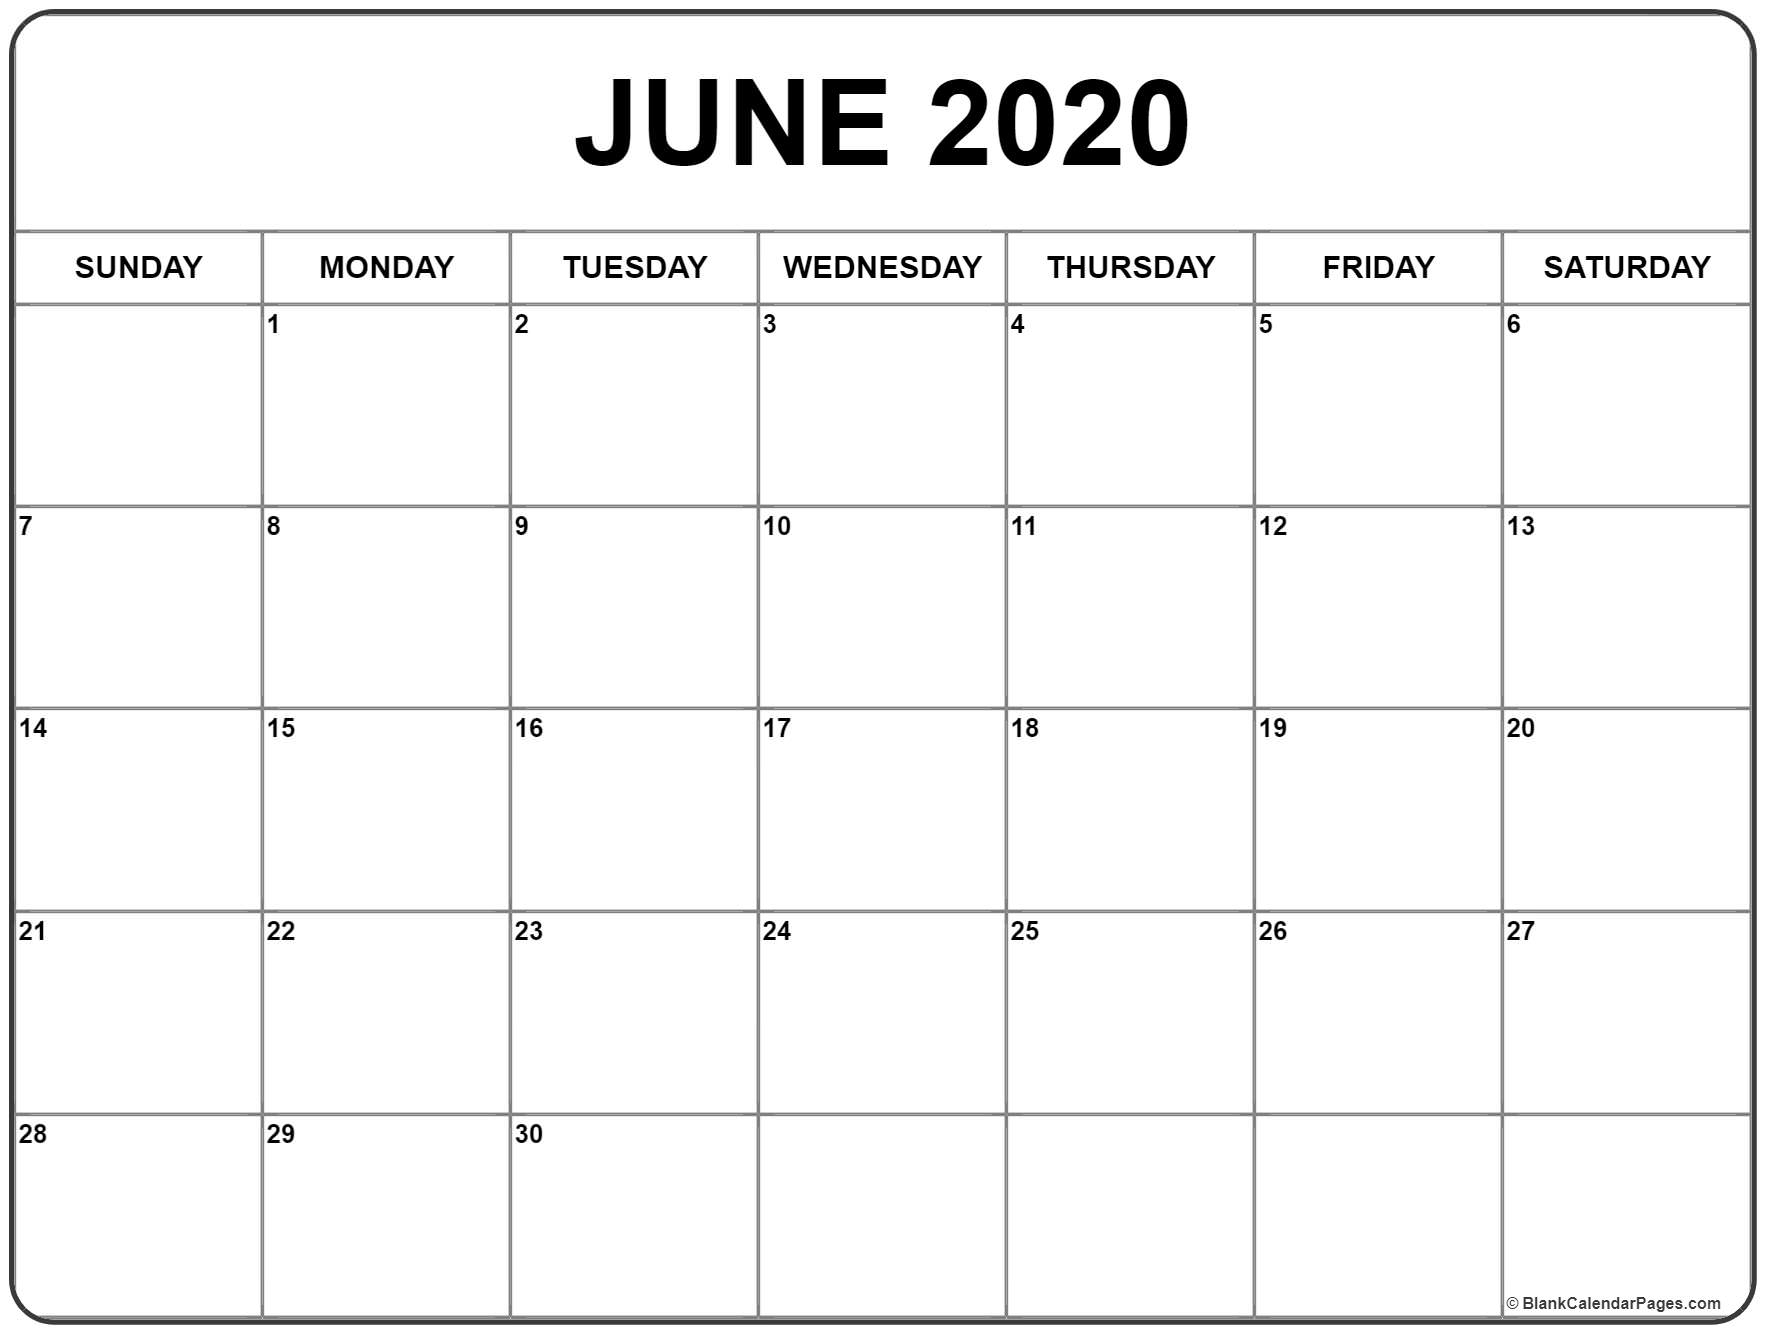 June 2020 Calendar | Free Printable Monthly Calendars throughout 2020 Year At A Glance Free Printable Calendar